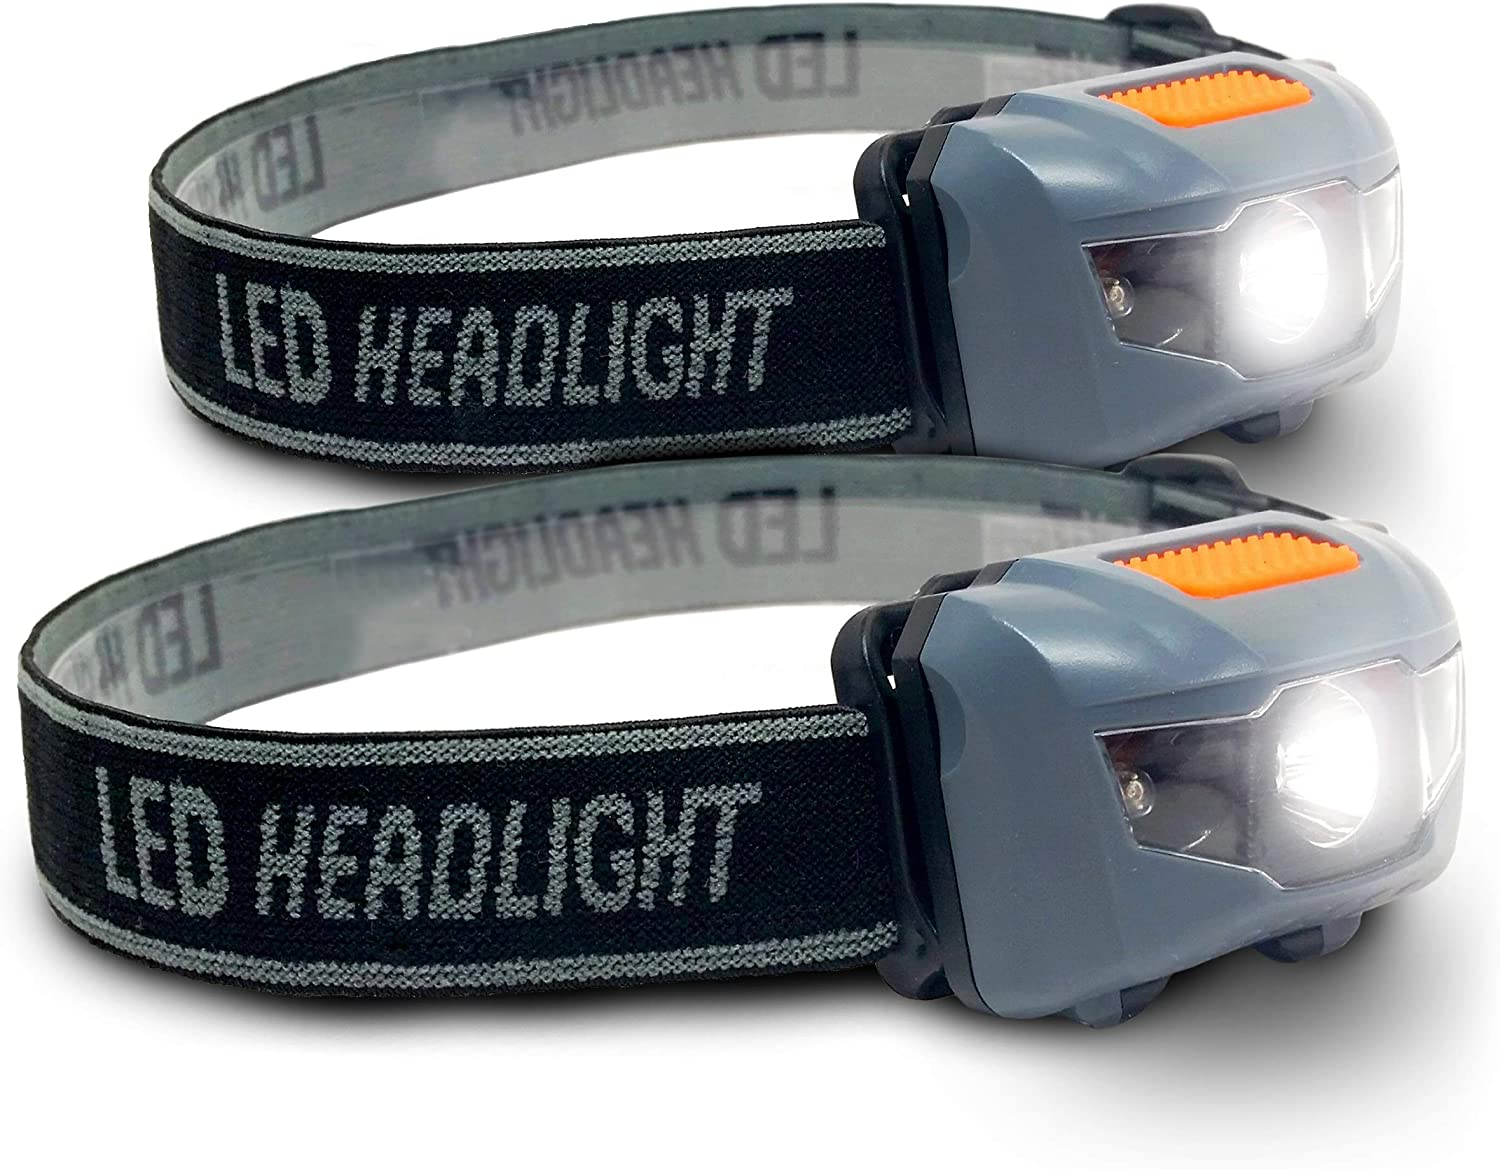 Bright Eyes 2-Pack Cree LED Headlamp White and Red Lights – Adjustable Running, Reading, Camping, Outdoor or Indoor Flashlight Headlights